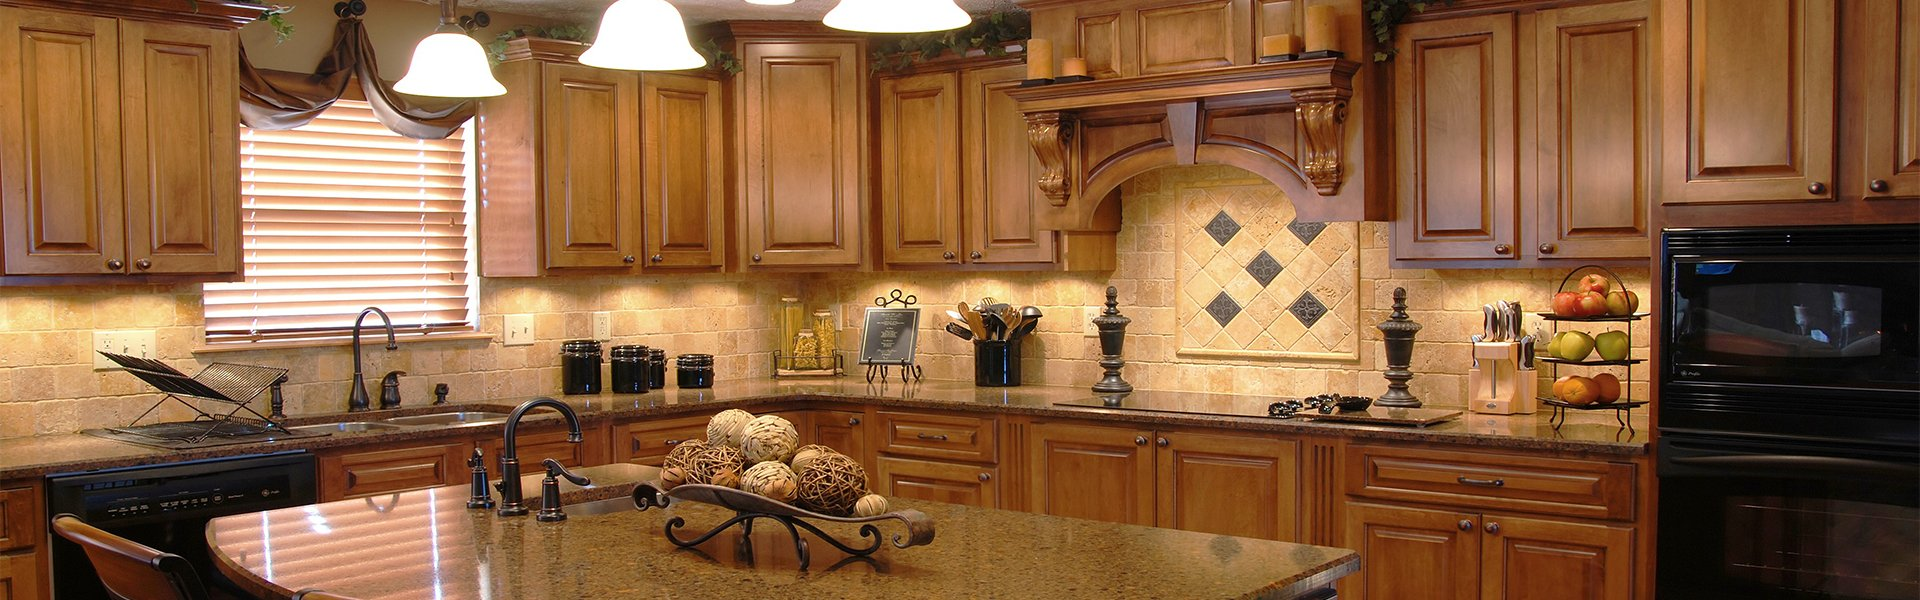 Restore Kitchen Cabinet Services